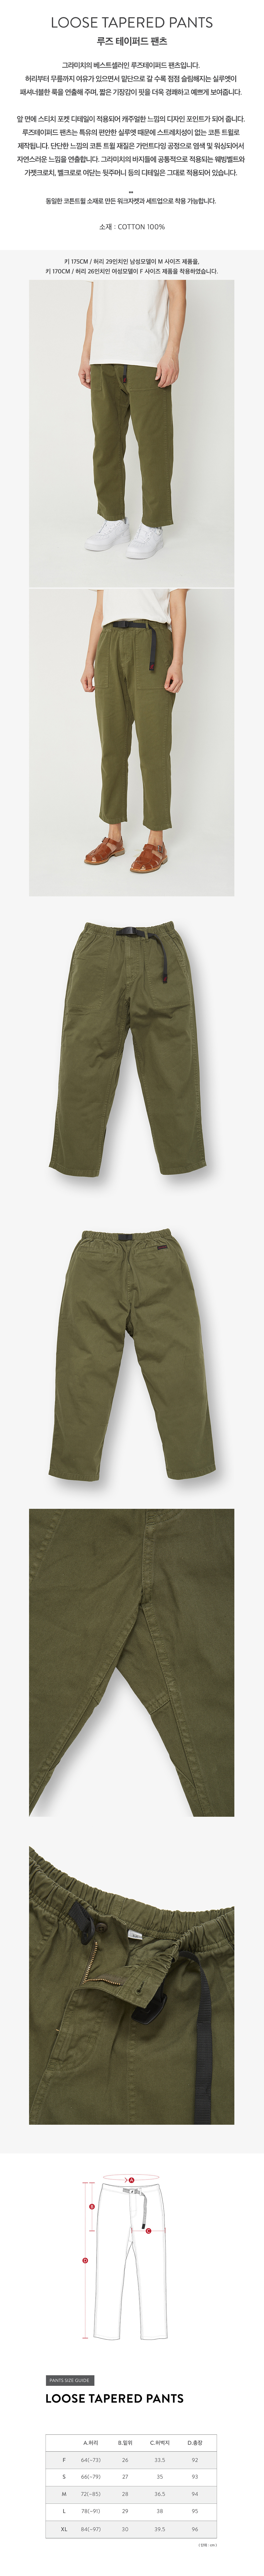 그라미치(GRAMICCI) LOOSE TAPERED PANTS OLIVE